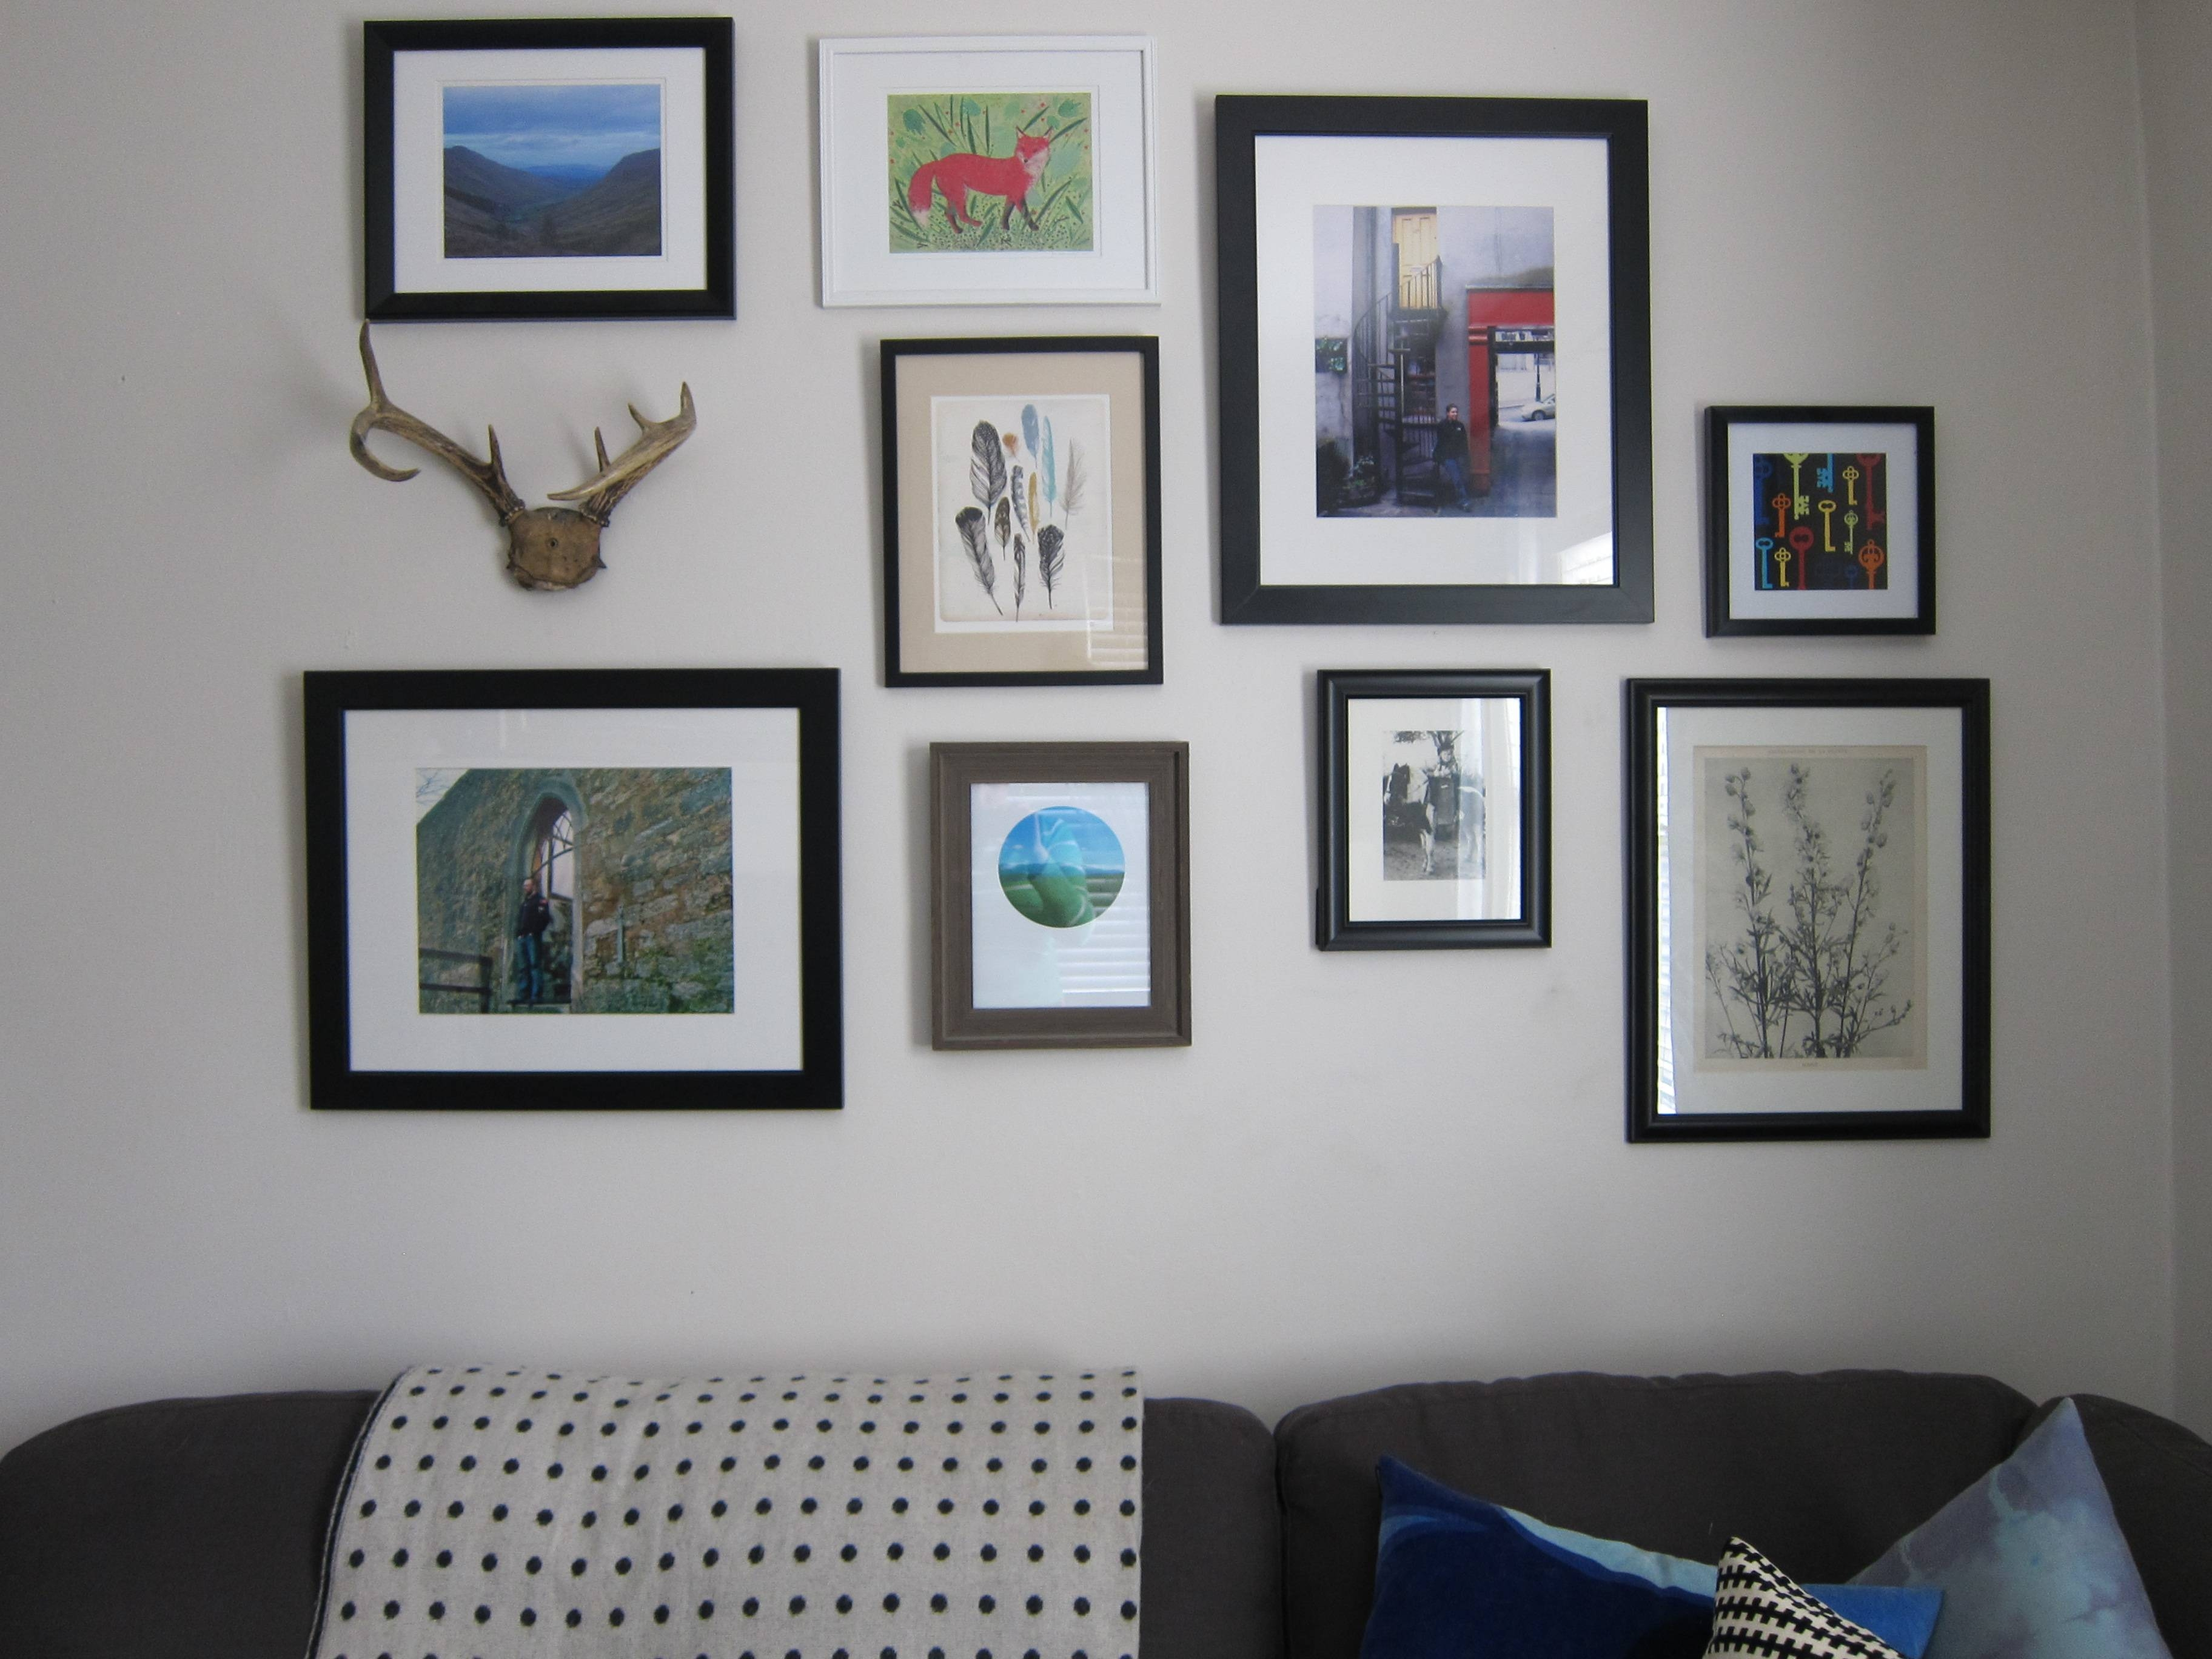 Frame Wall Additions | Escape From Bk For 2017 Wall Art Frames (View 10 of 20)